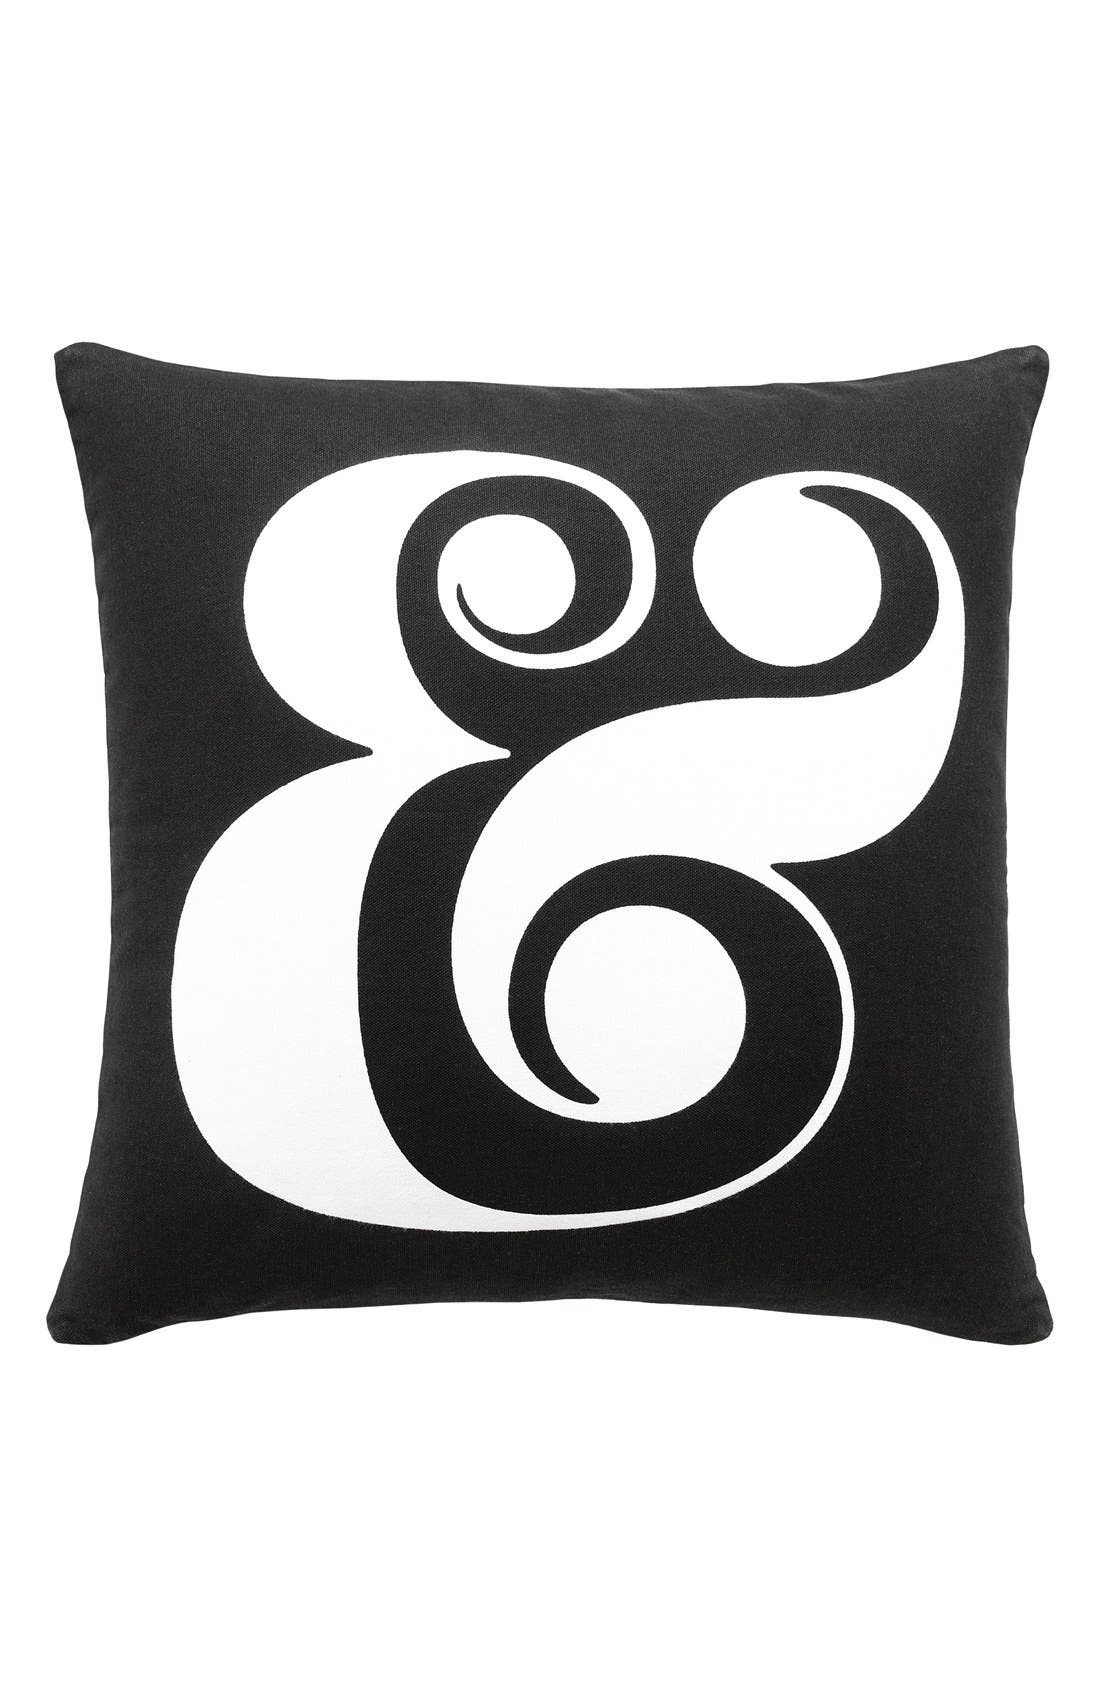 'ampersand' pillow,                         Main,                         color, Black/ White